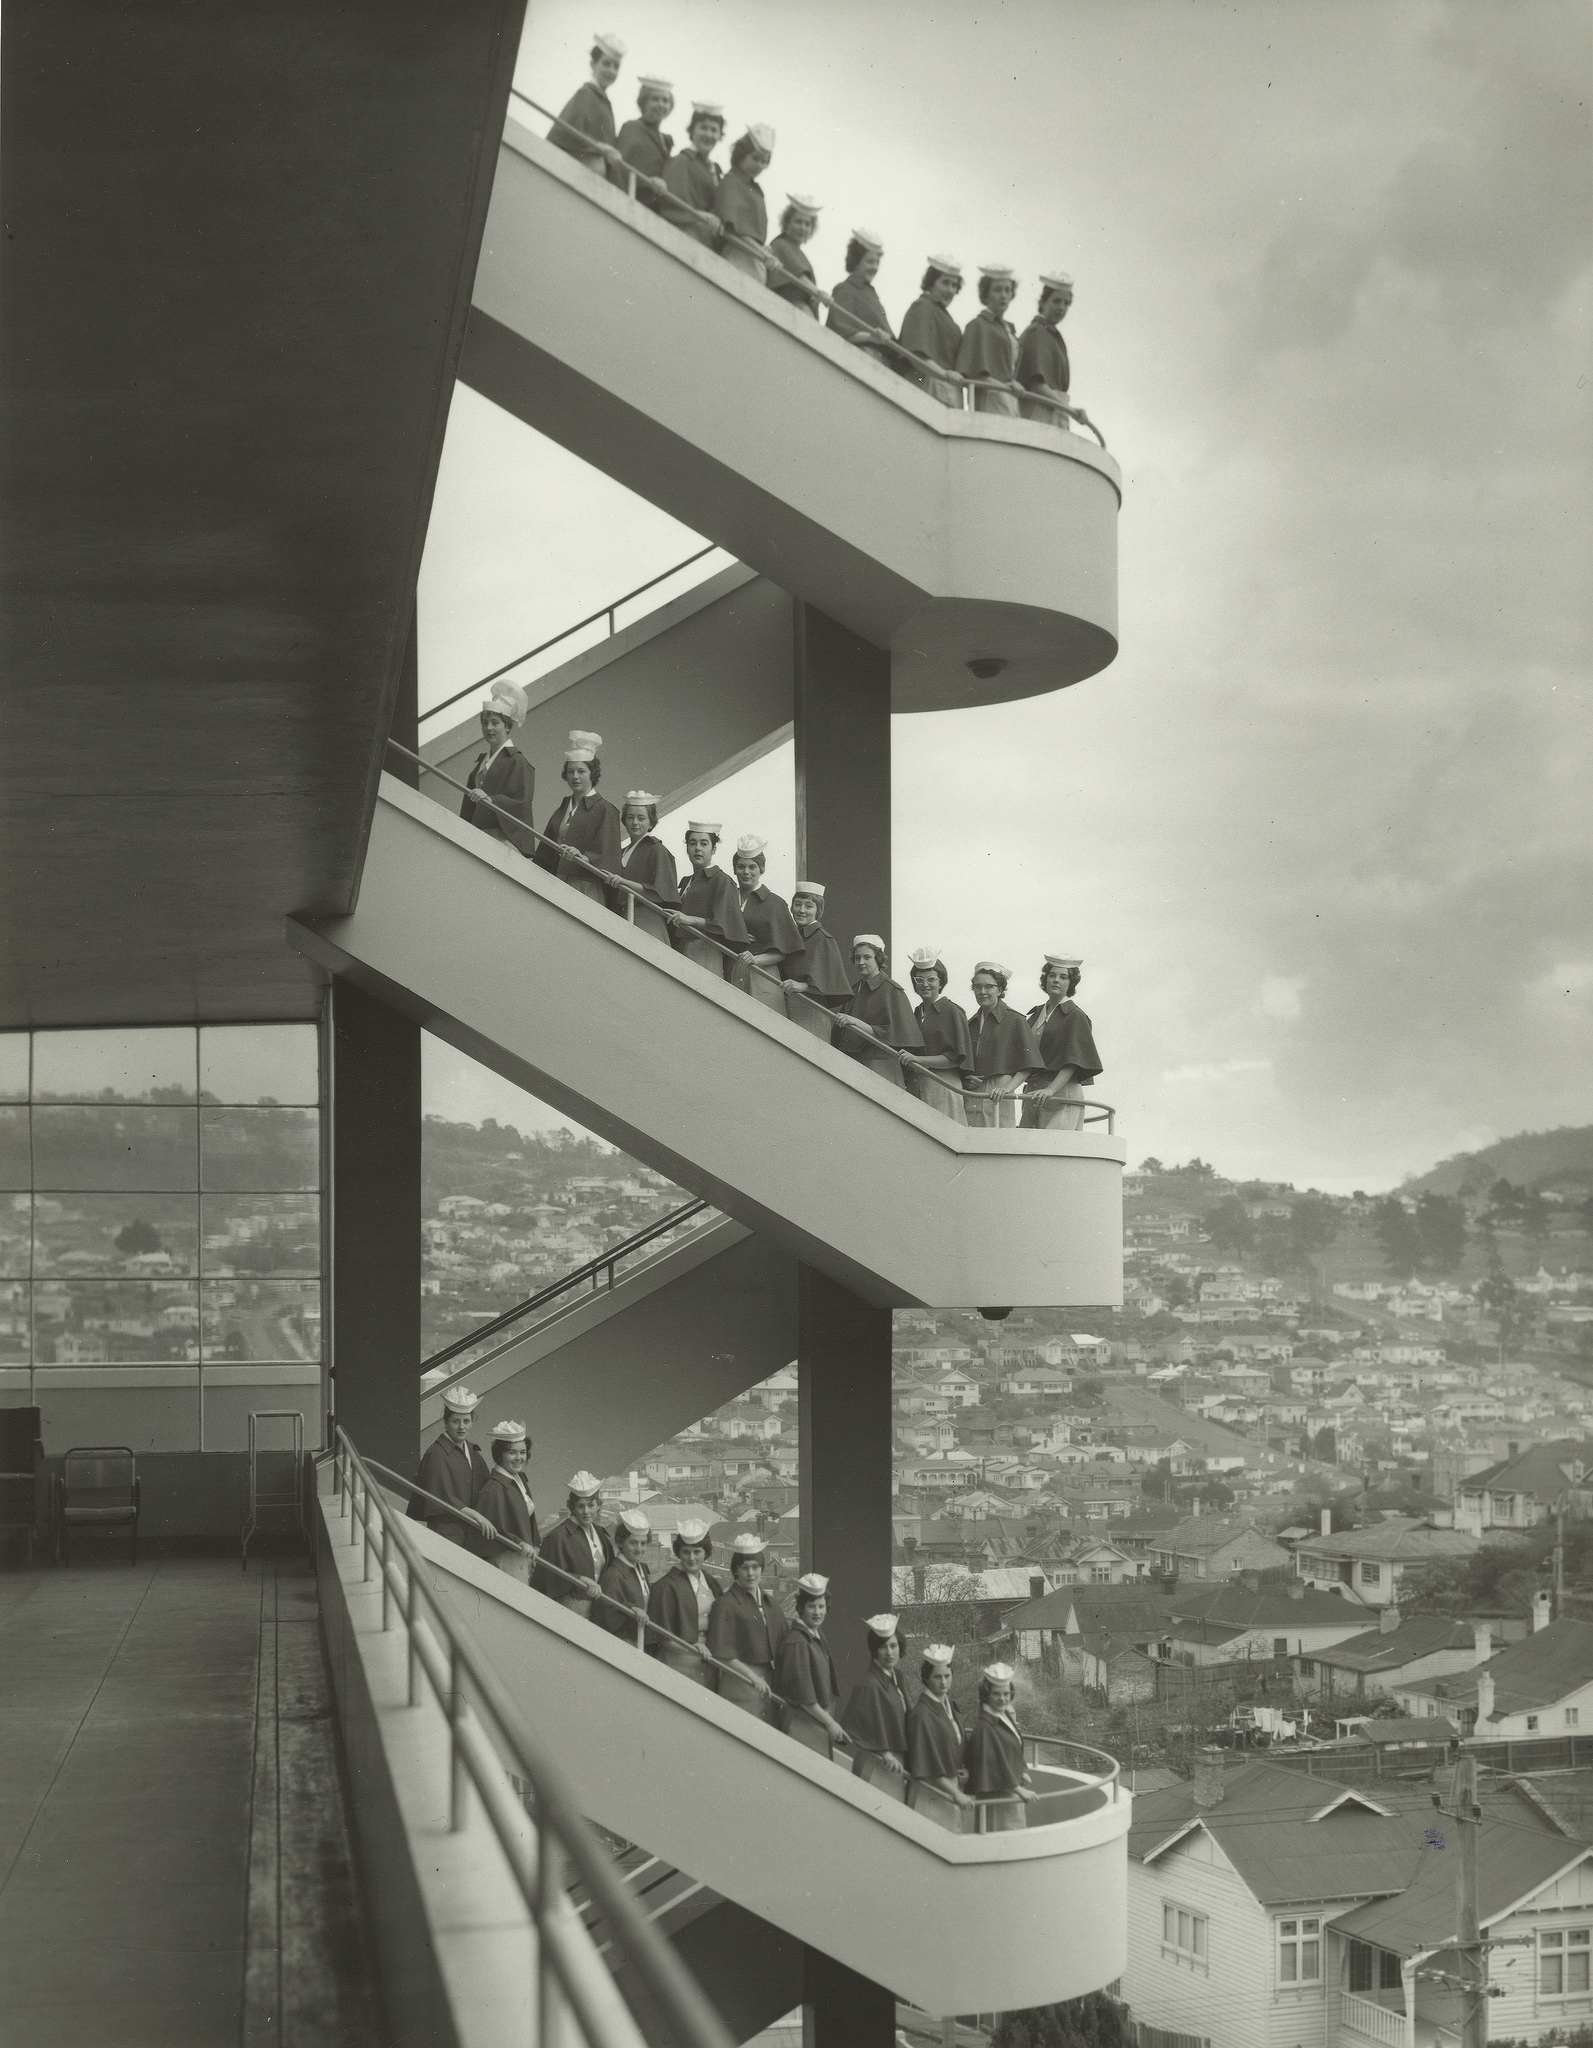 One of my favourite archive photographs of the old hospital staircase captured in the 1960s. A powerful composition through use of geometry and subject. Tasmanian Archive and Heritage Office: From the AB641 series